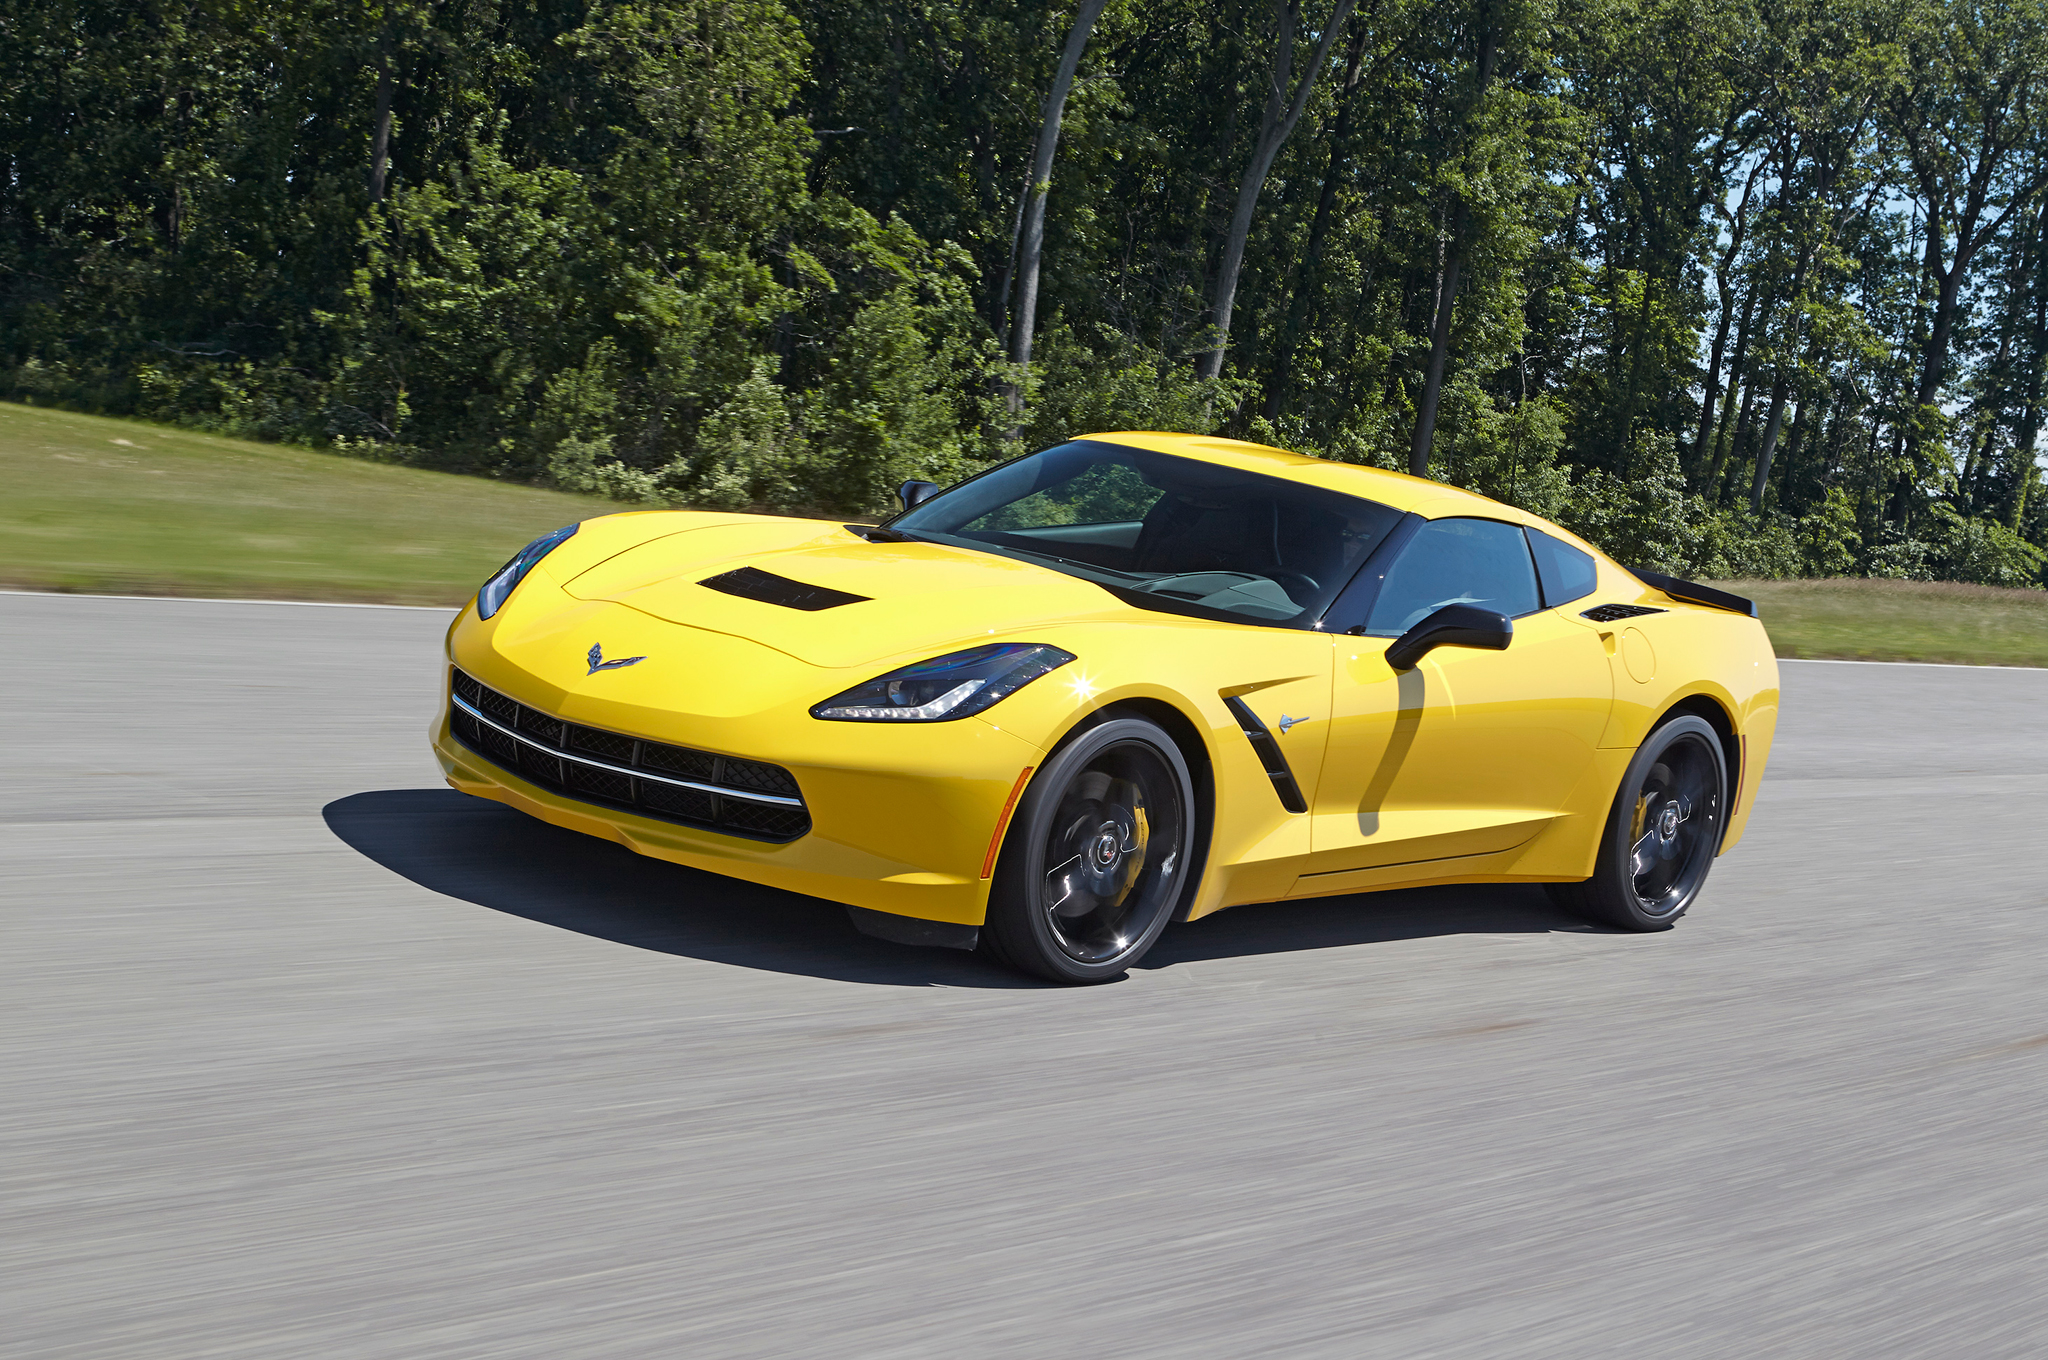 Good 2014 Chevrolet Corvette Stingray Z51 Has 3.8 Second 0 60 MPH Time